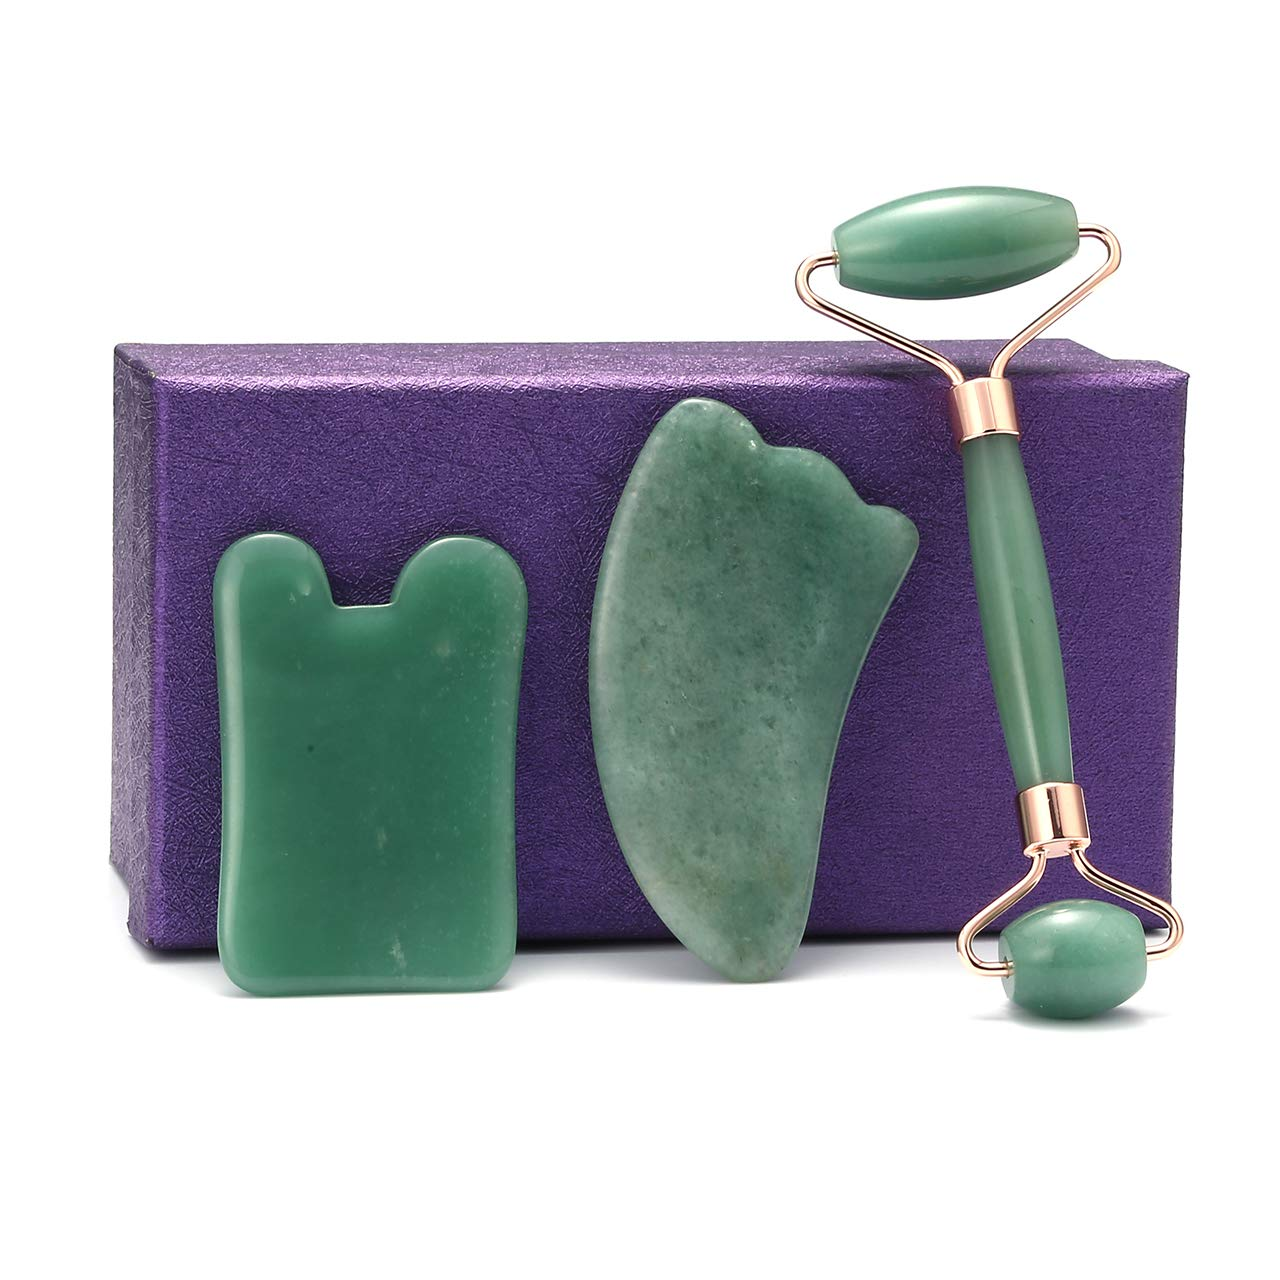 JOVIVI Jade Roller and Gua Sha Tools Set - Jade Roller For Face- 100% Natural Green Aventurine Facial Jade Stone- Face Eye Neck Roller for Puffiness, Wrinkles and Anti-Aging